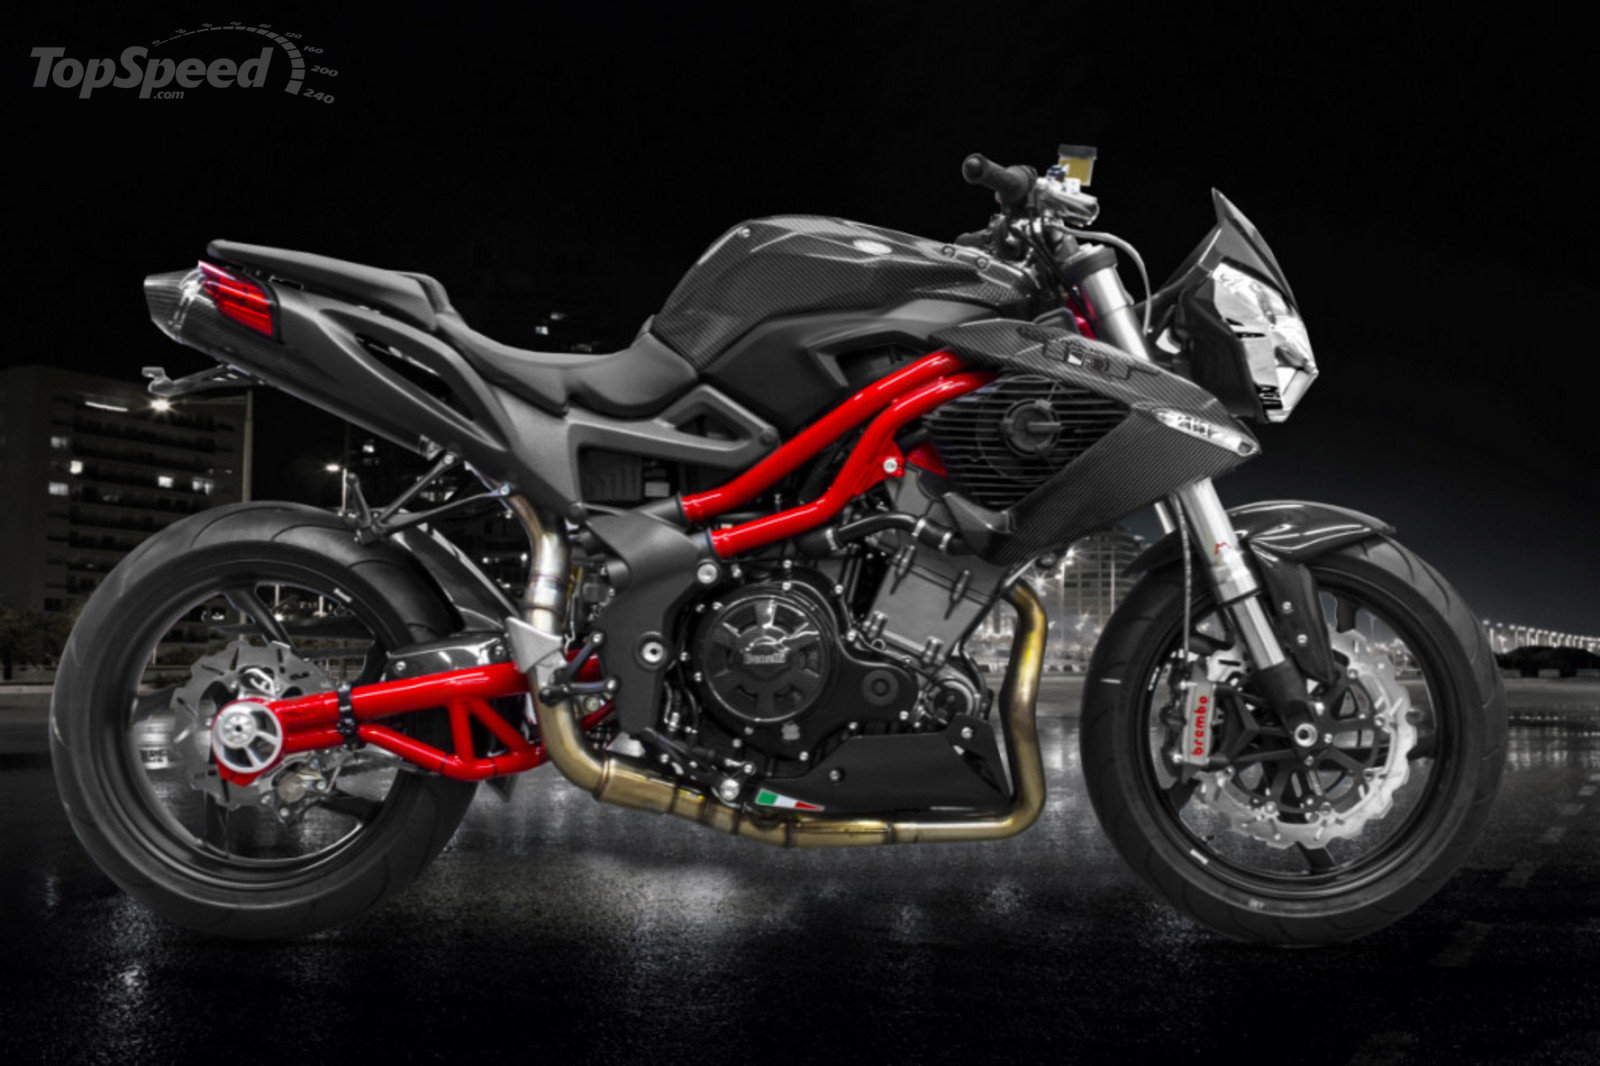 2014 Benelli Tnt 1130r Carbon Edition Review Top Speed